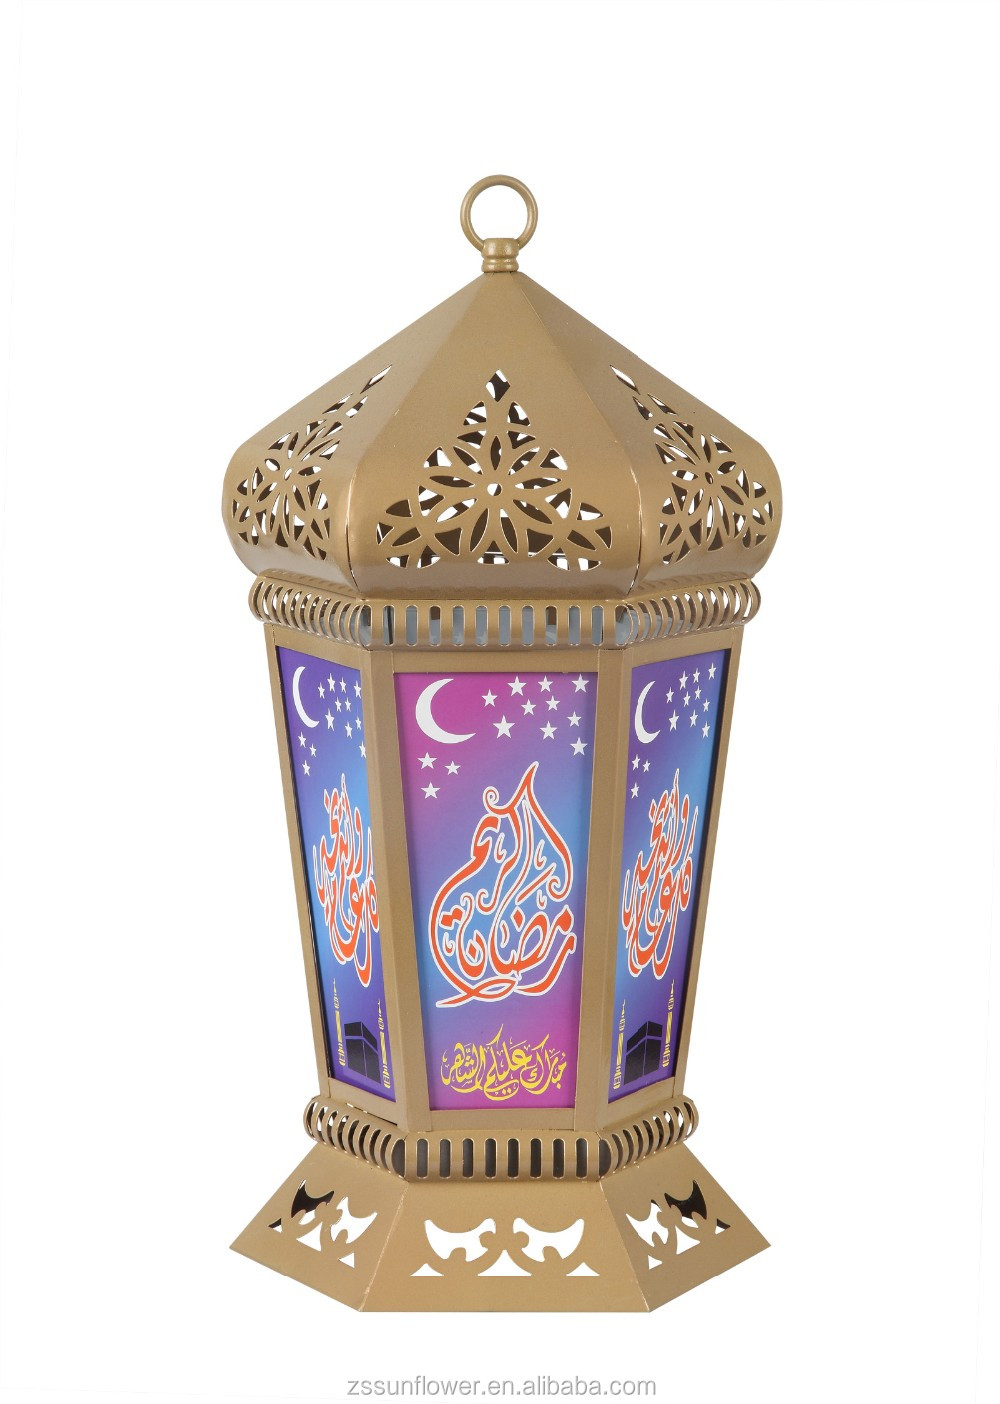 antique candle holders ramadan lantern iron table lamp for arabic decoration view decorative table lamp for ramadan sunflower lighting product details from zhongshan city guzhen sunflower hardware lighting factory on alibaba com antique candle holders ramadan lantern iron table lamp for arabic decoration view decorative table lamp for ramadan sunflower lighting product